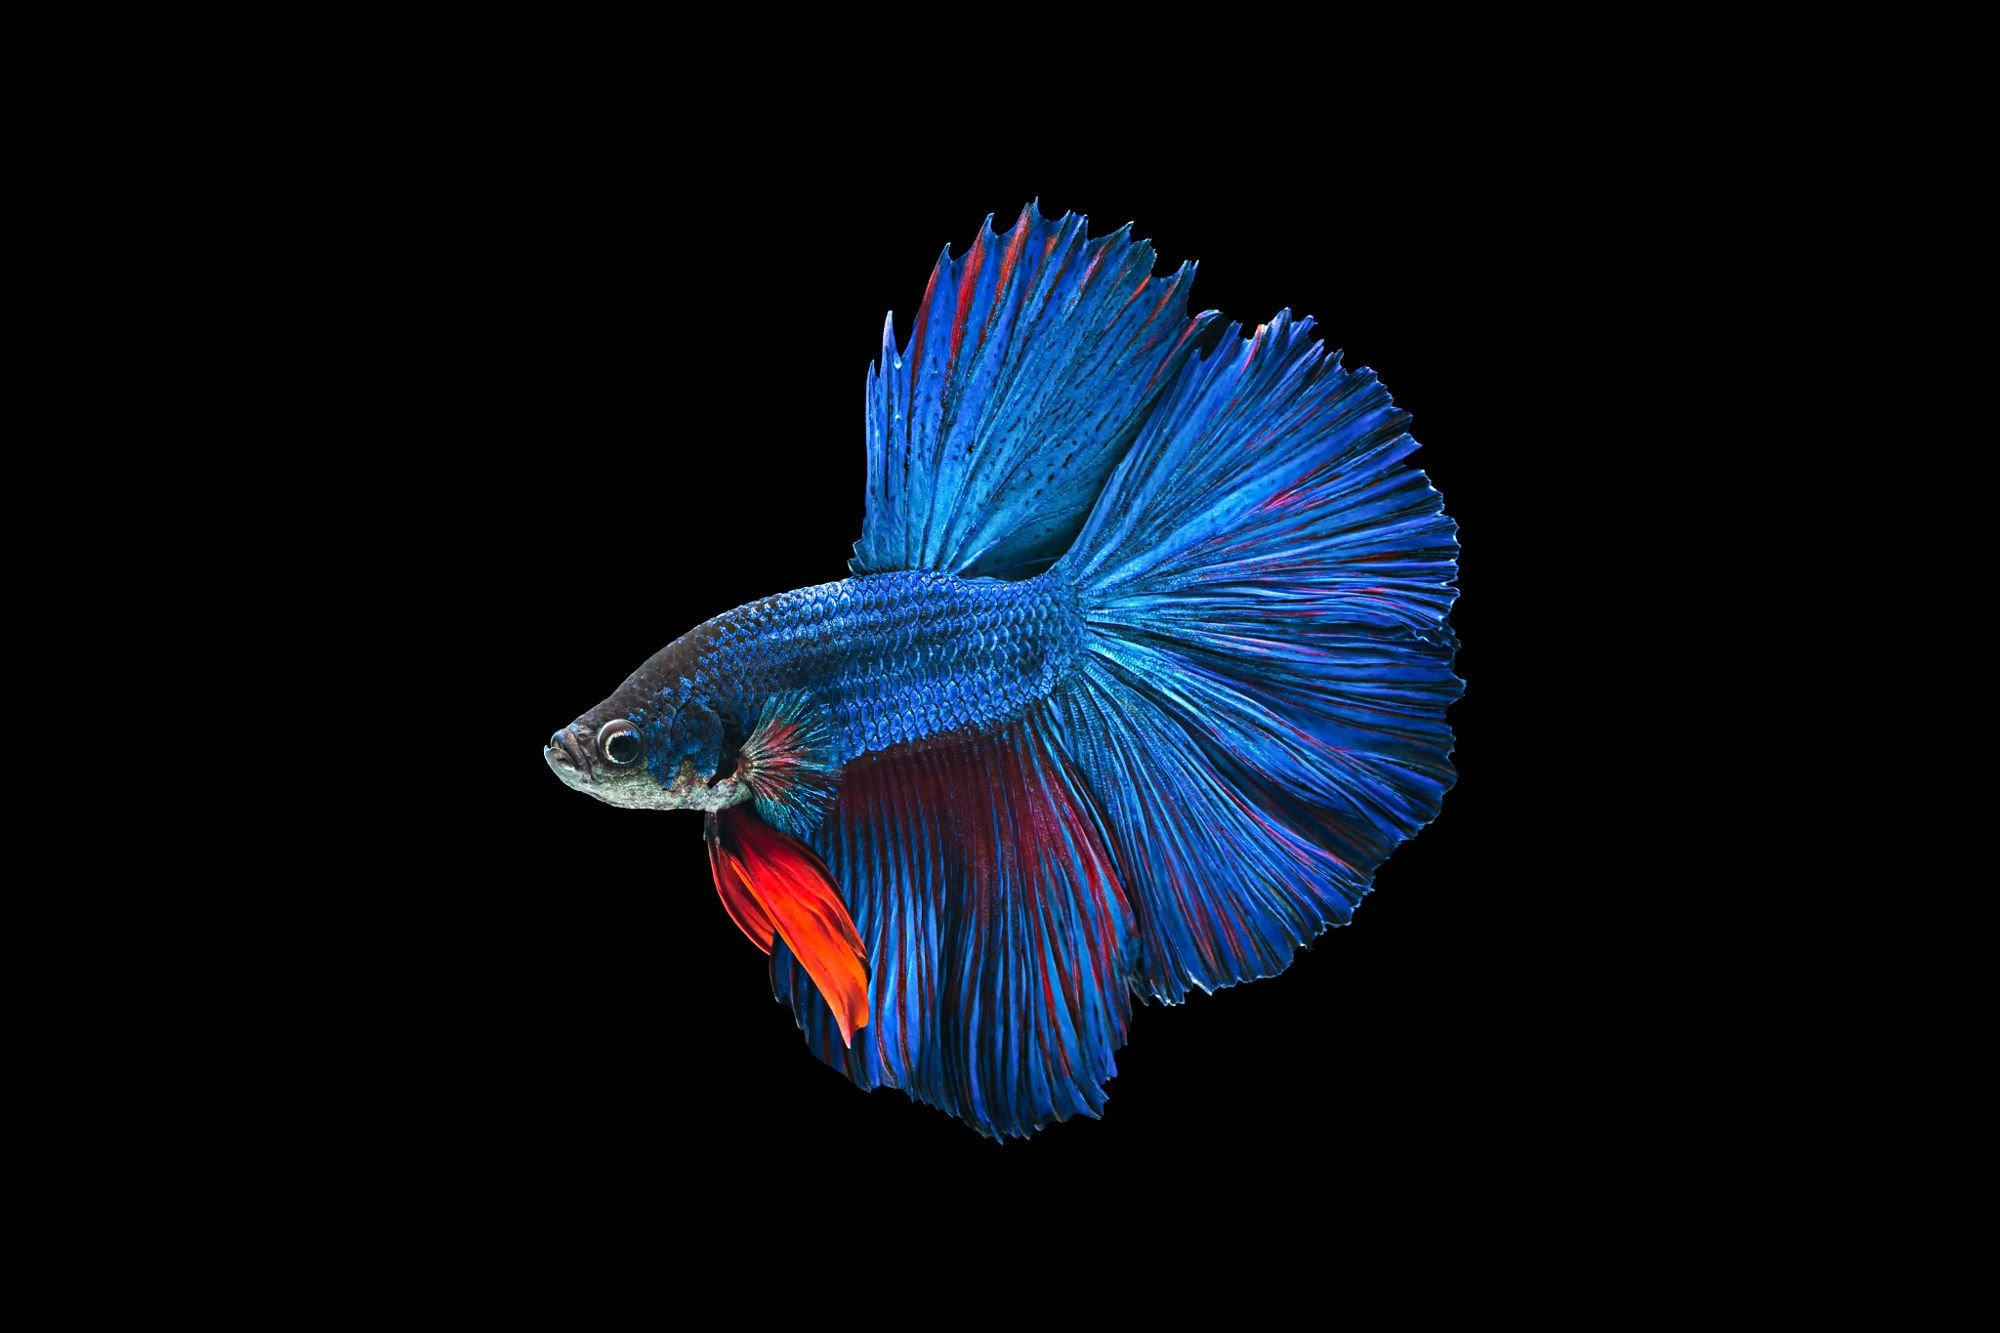 Fighter Fish Hd Wallpaper Download Betta Siamese Fighting Fish Underwater Tropical